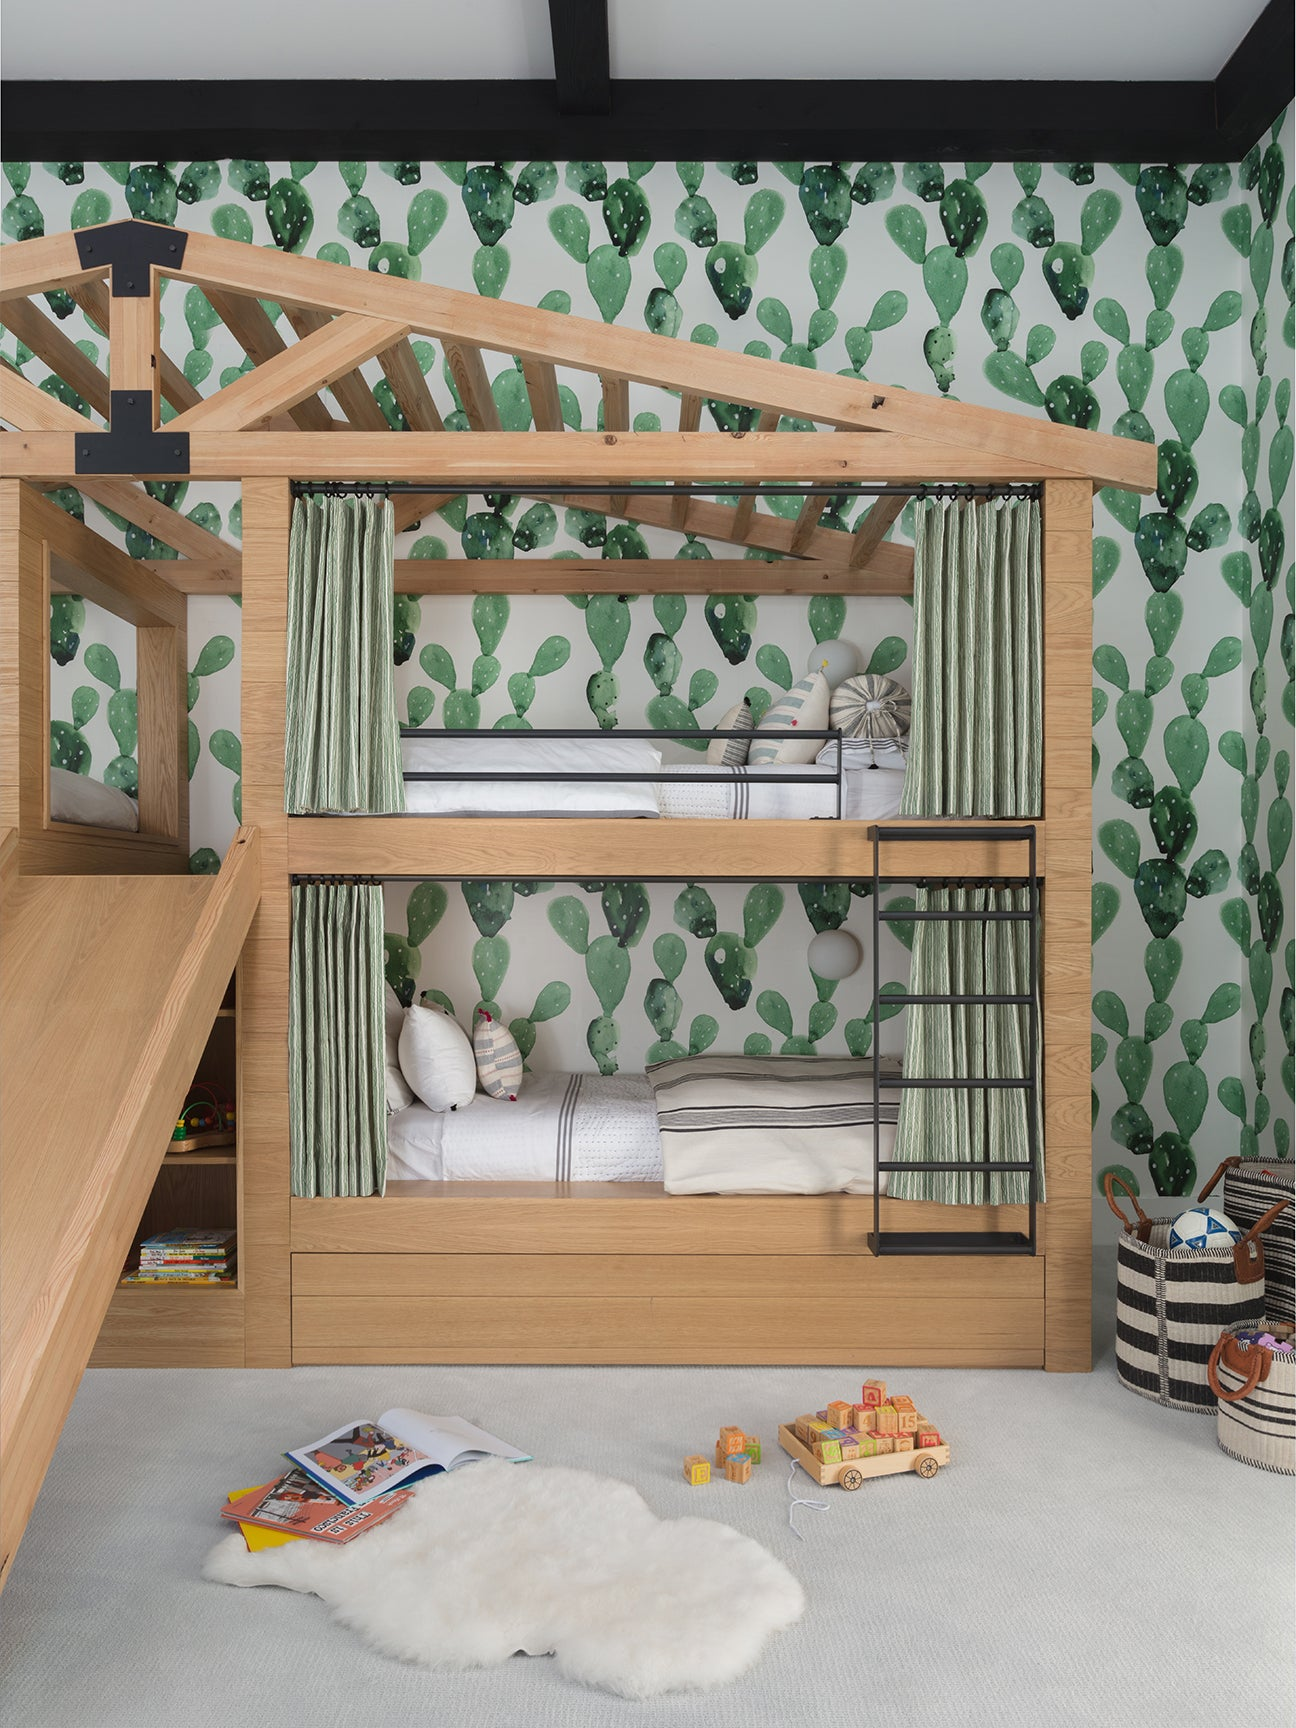 house-shaped bunkbed with cactus wallpaper